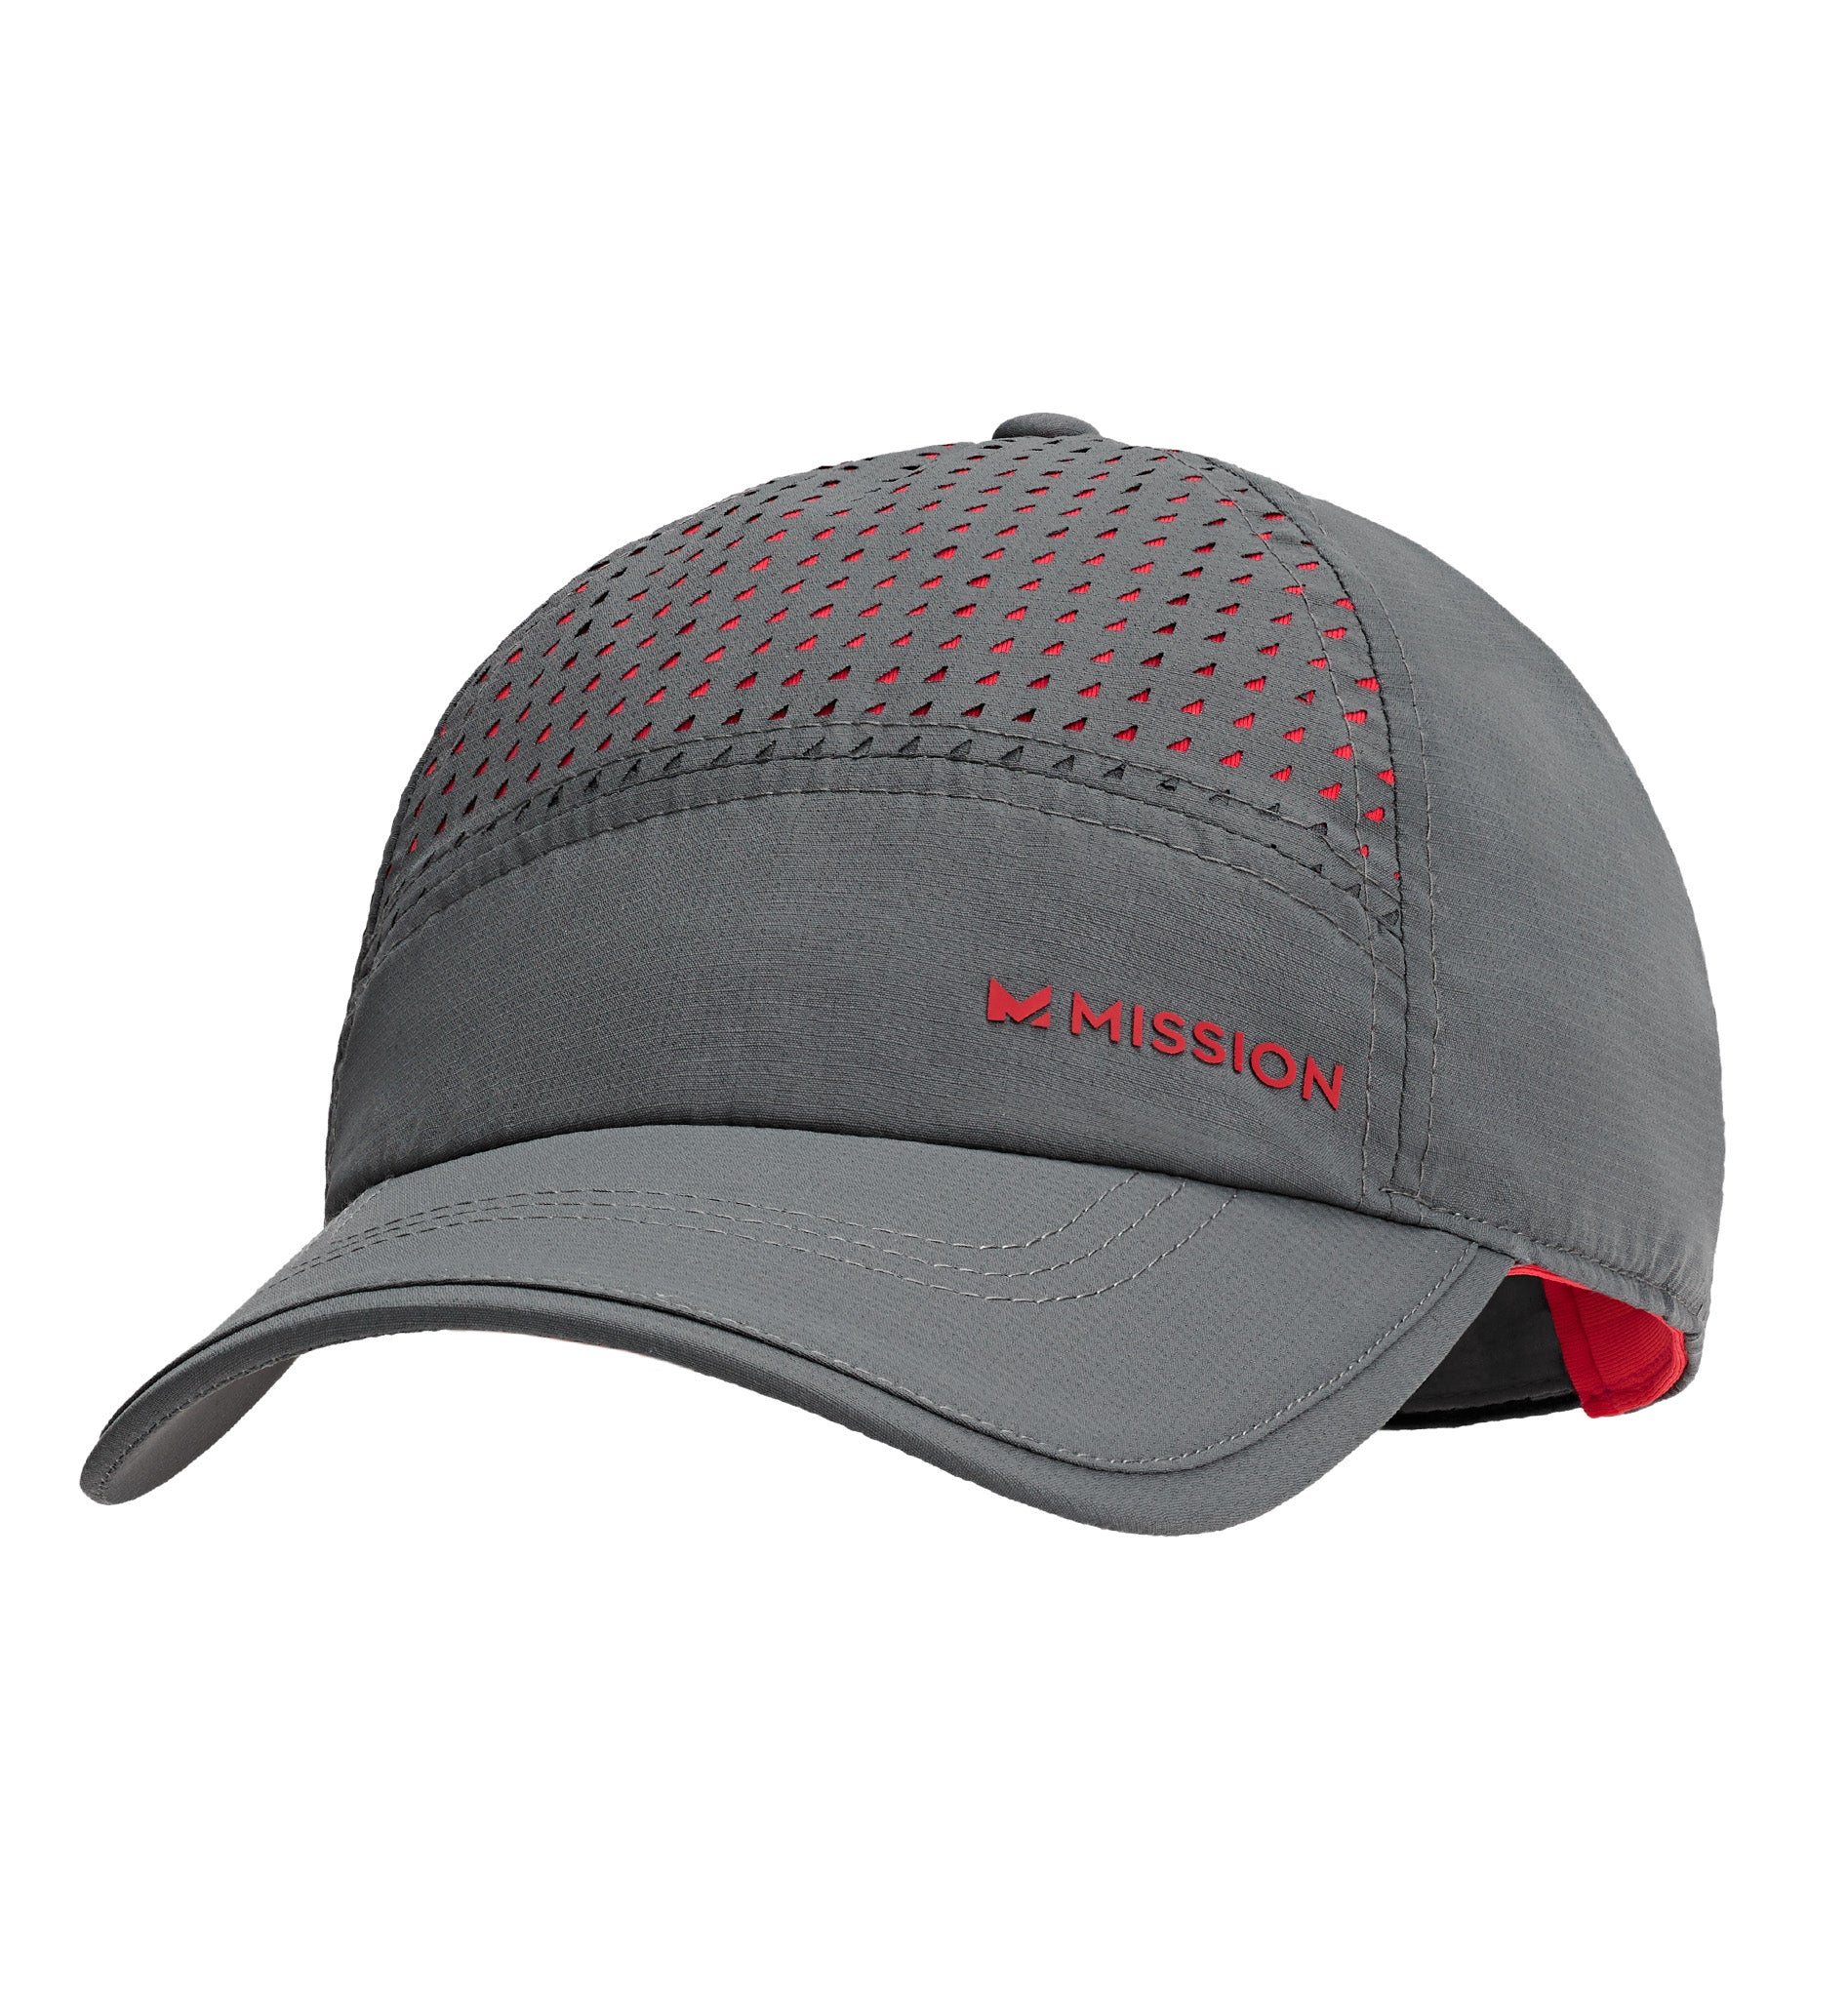 5cdd0e6618e MISSION HydroActive MAX Cooling Hat